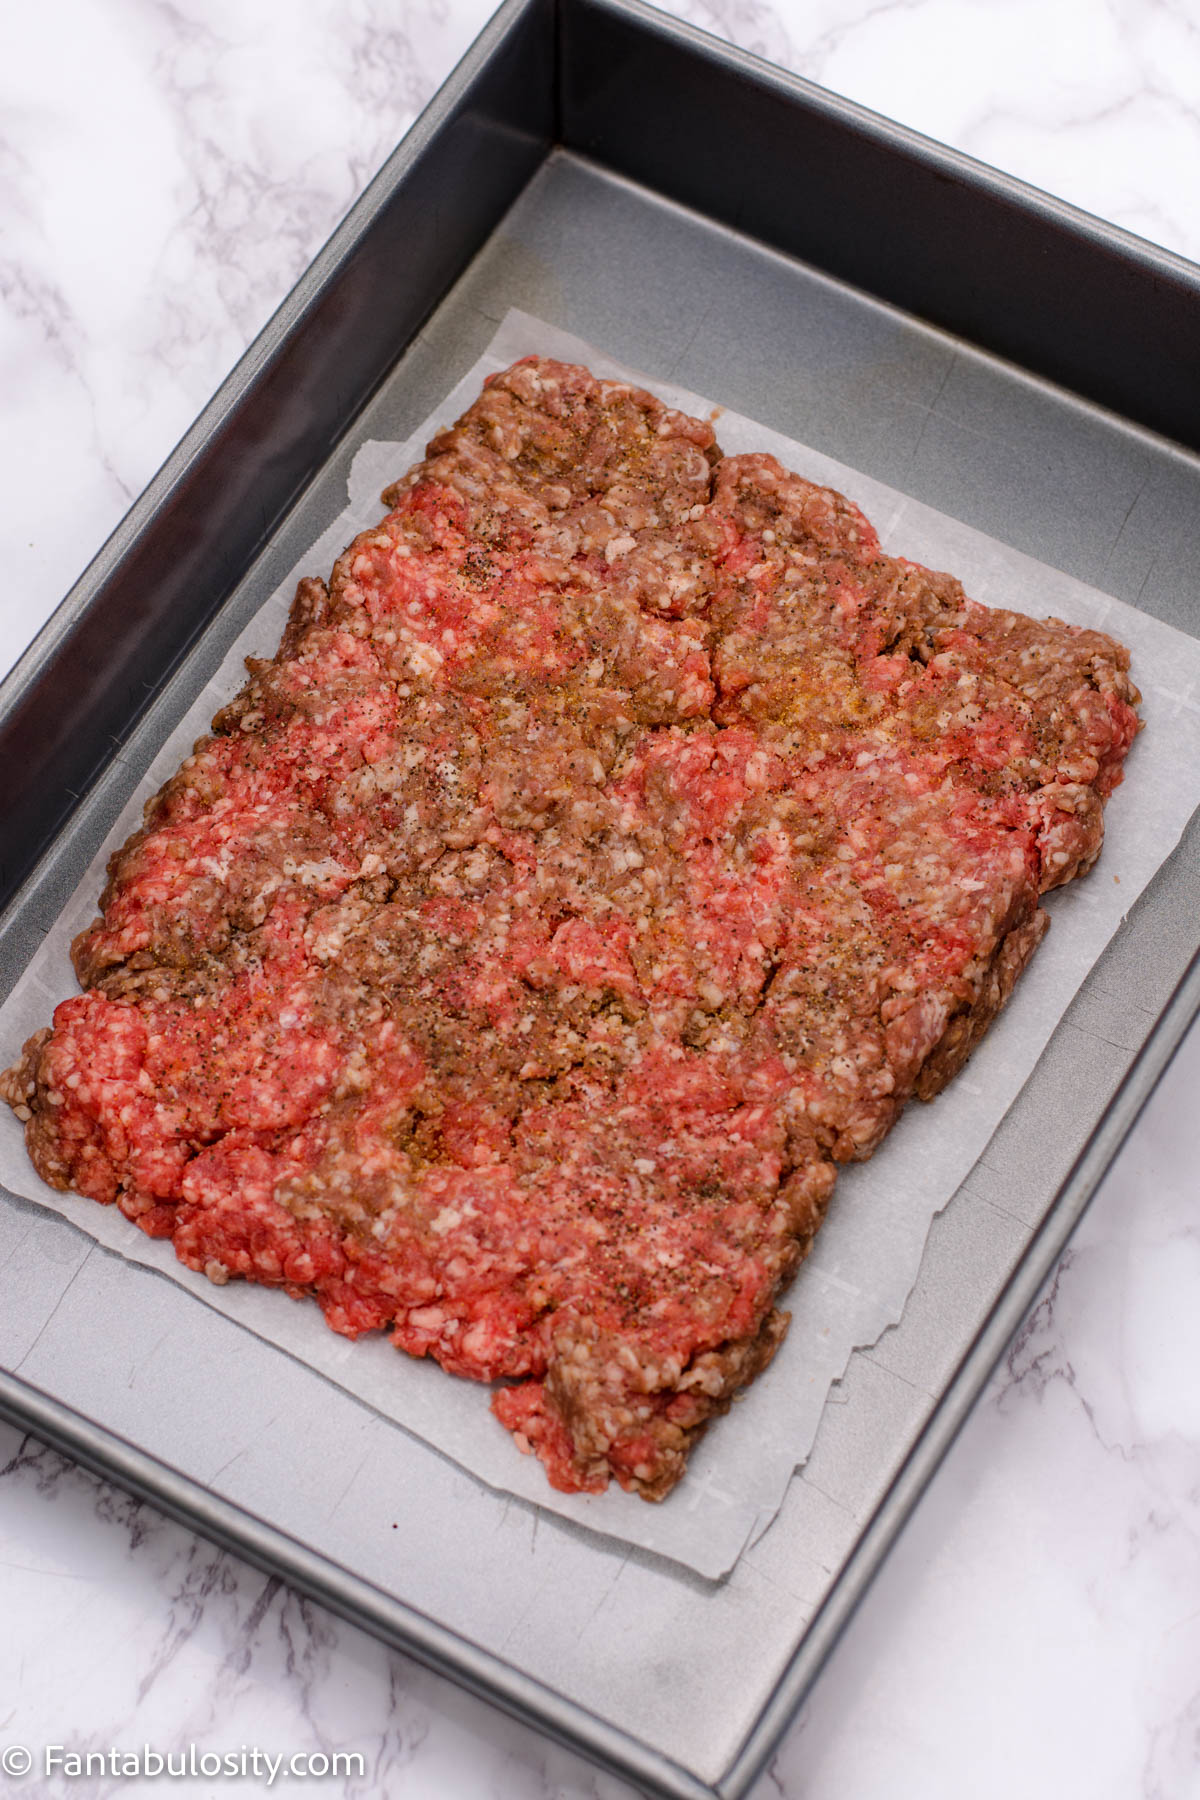 Raw ground beef in baking pan with sides